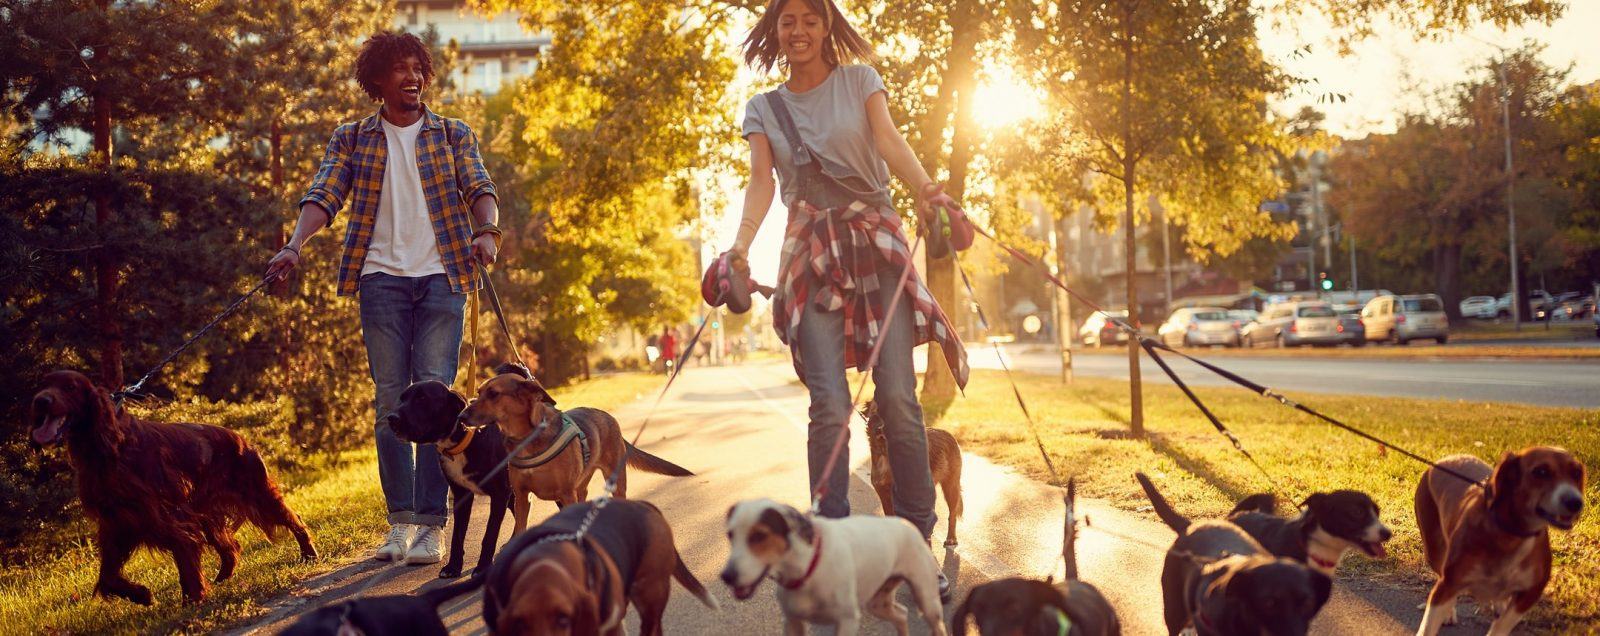 Girl walking with several dogs on leashes